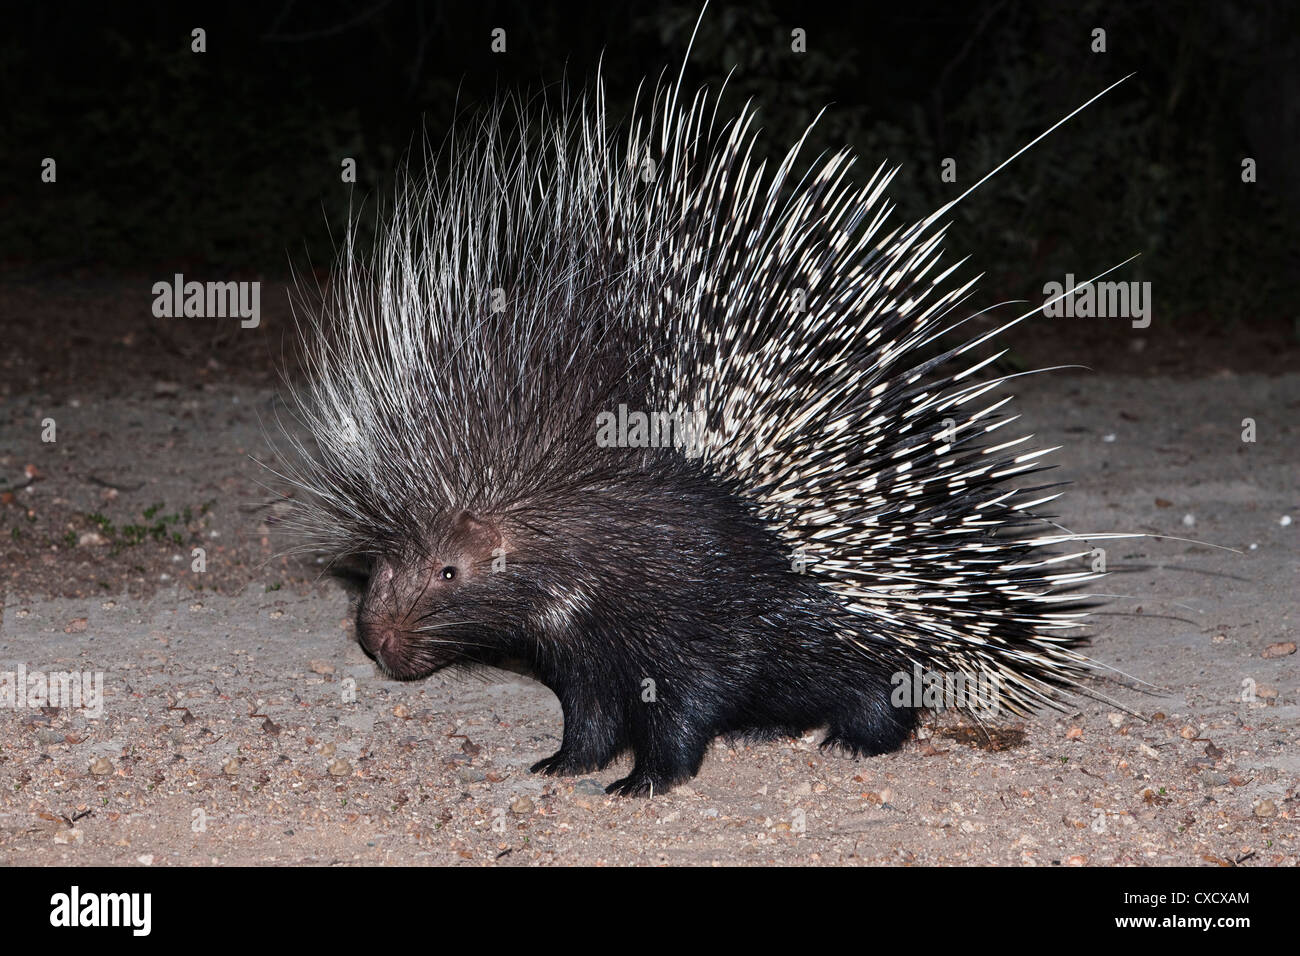 Porcupine (Hystrix africaeaustralis), Limpopo, South Africa, Africa - Stock Image